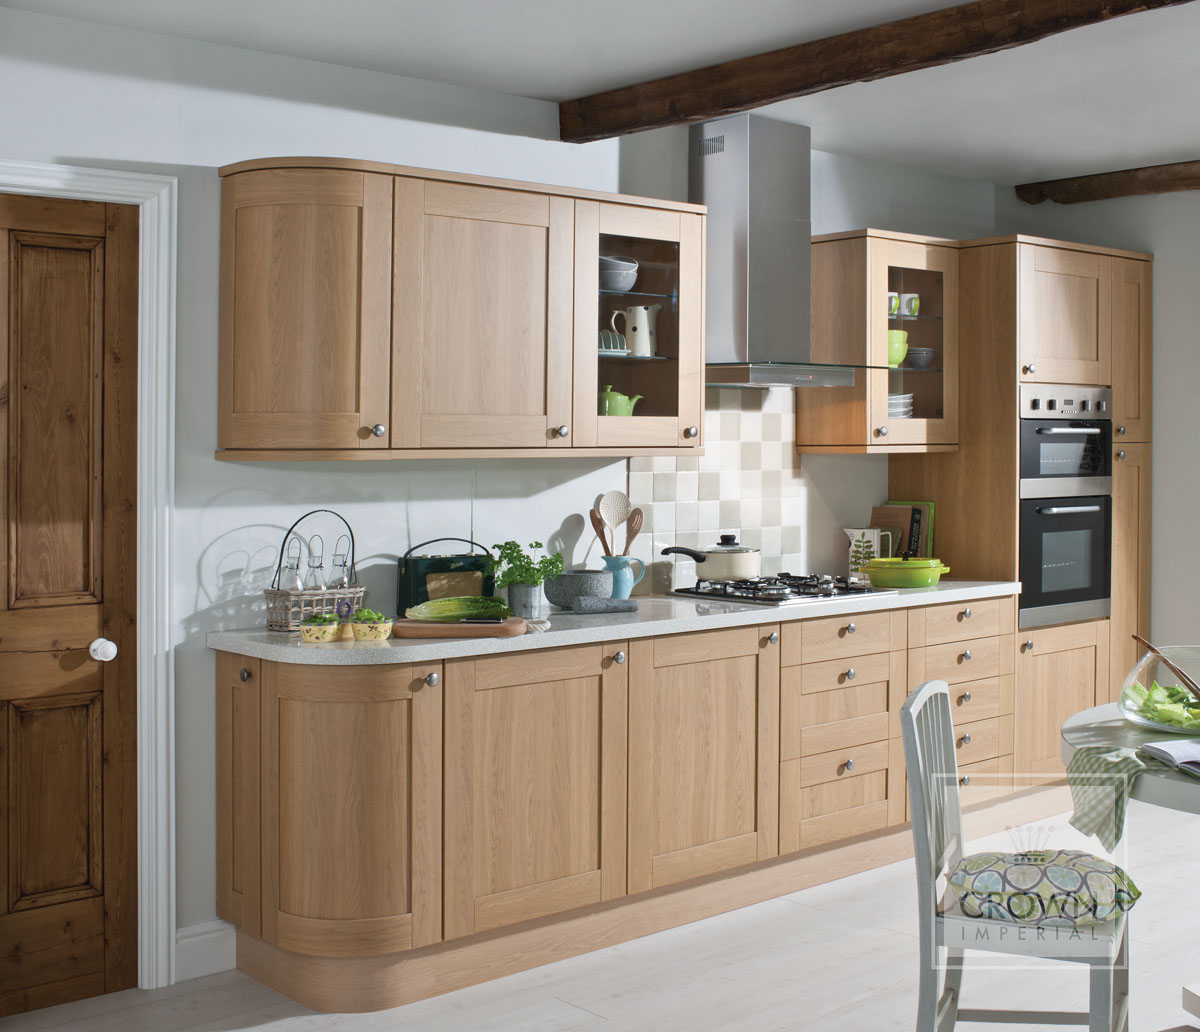 Designs Kitchen: Three Top Tips For Small Kitchen Design